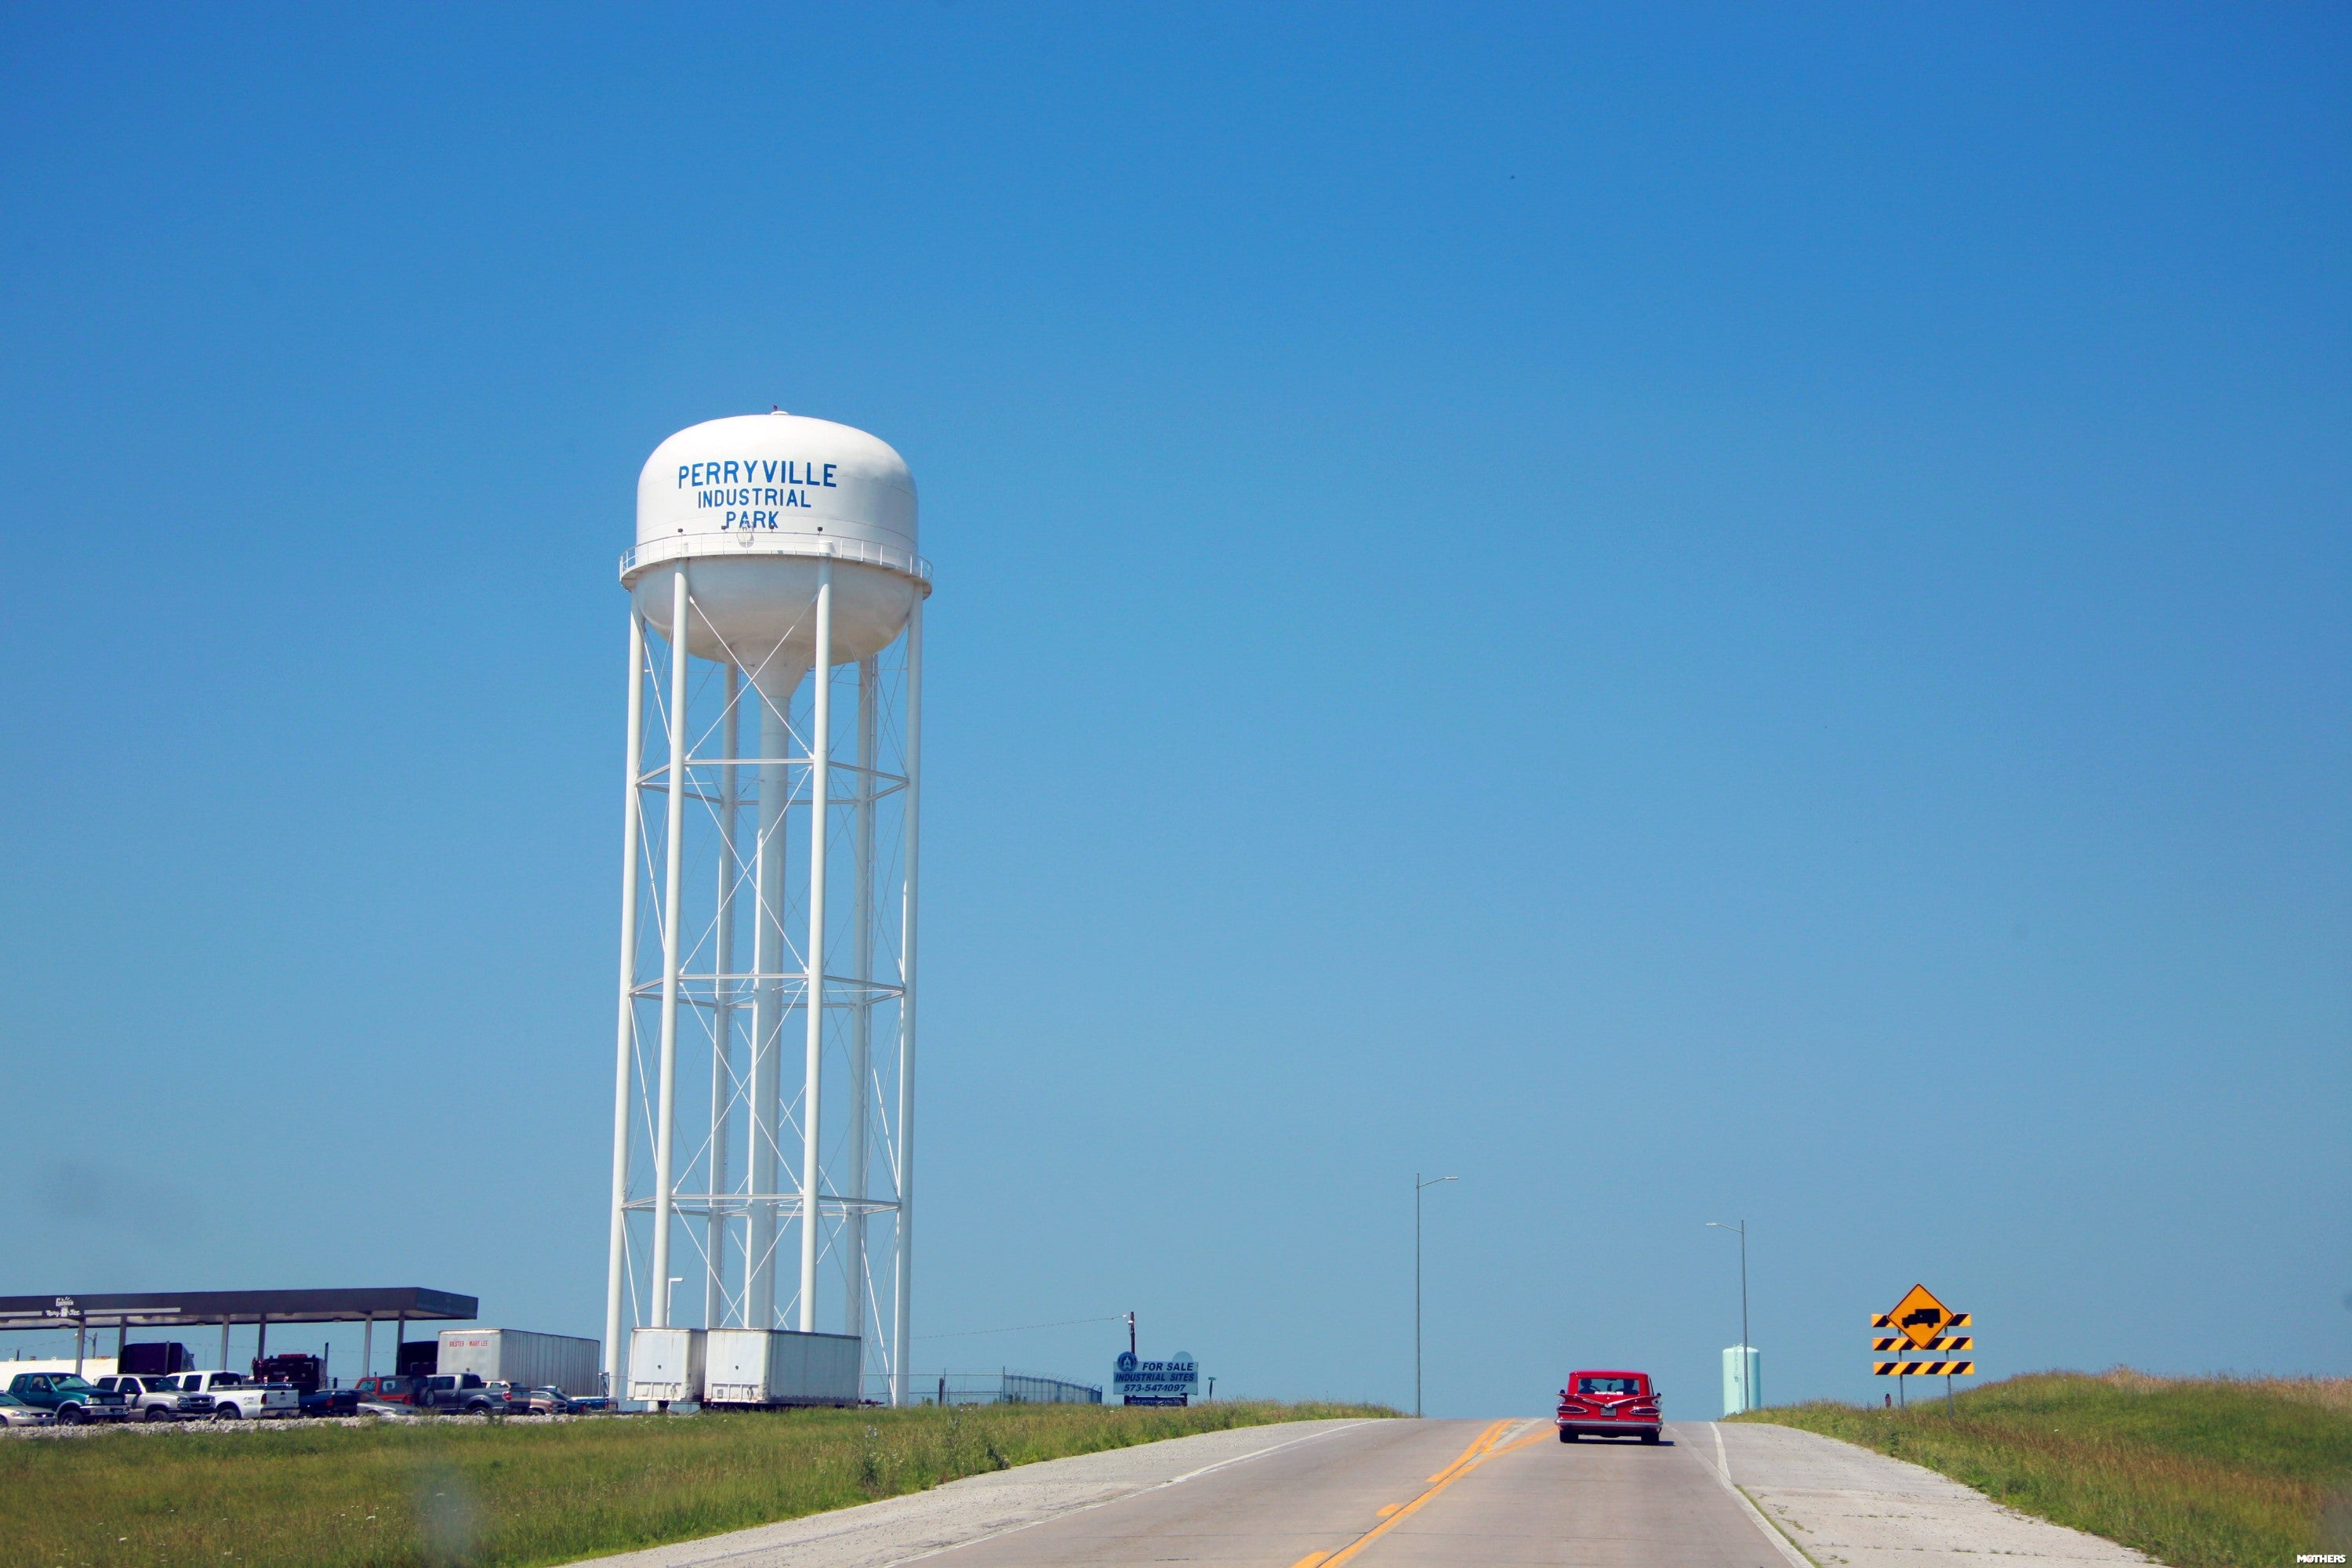 Perryville Industrial Park water tower